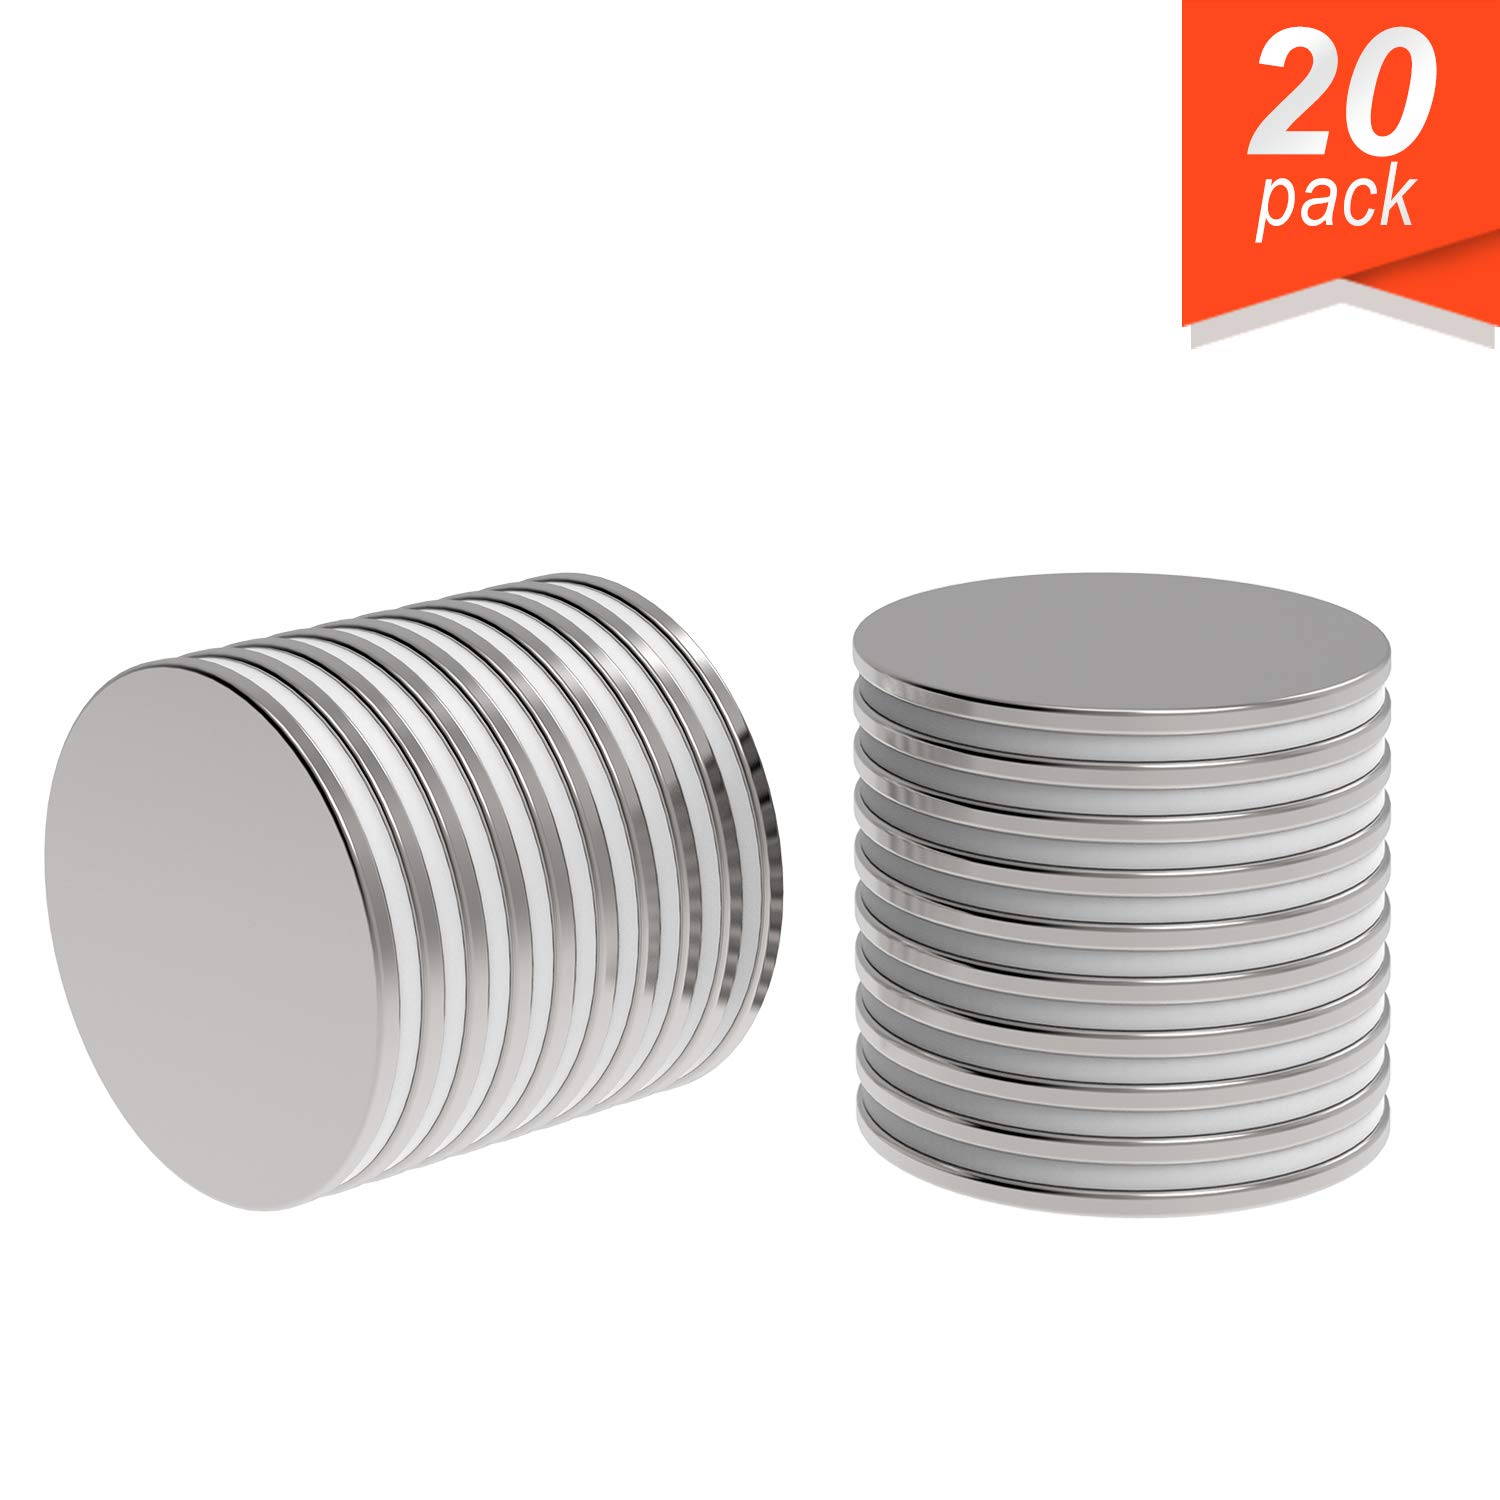 """Super Strong Neodymium Magnet N52 1.26 x 1/16"""" Permanent Magnet Disc, The World's Strongest & Most Powerful Rare Earth Magnets by Applied Magnets 20Pc"""